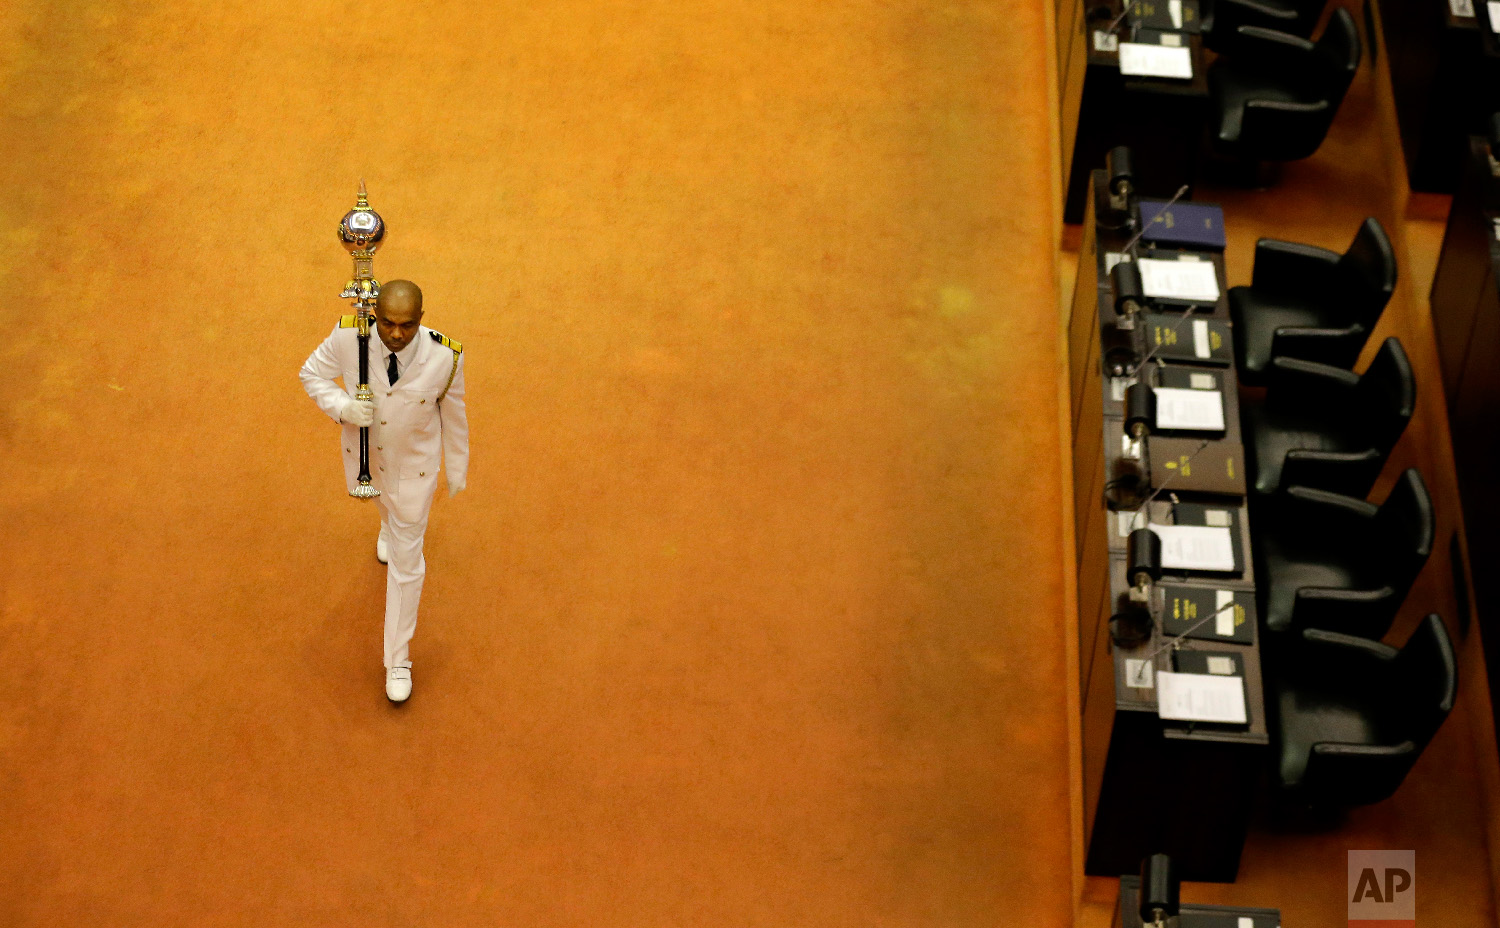 Sri Lanka's sergeant at arms Narendra Fernando walks carrying the mace in the well of the house past empty seats of President Maithripala Sirisena and disputed Prime Minister Mahinda Rajapaksa at the beginning of the parliamentary session in Colombo, Sri Lanka, on Dec. 5, 2018. (AP Photo/Eranga Jayawardena)